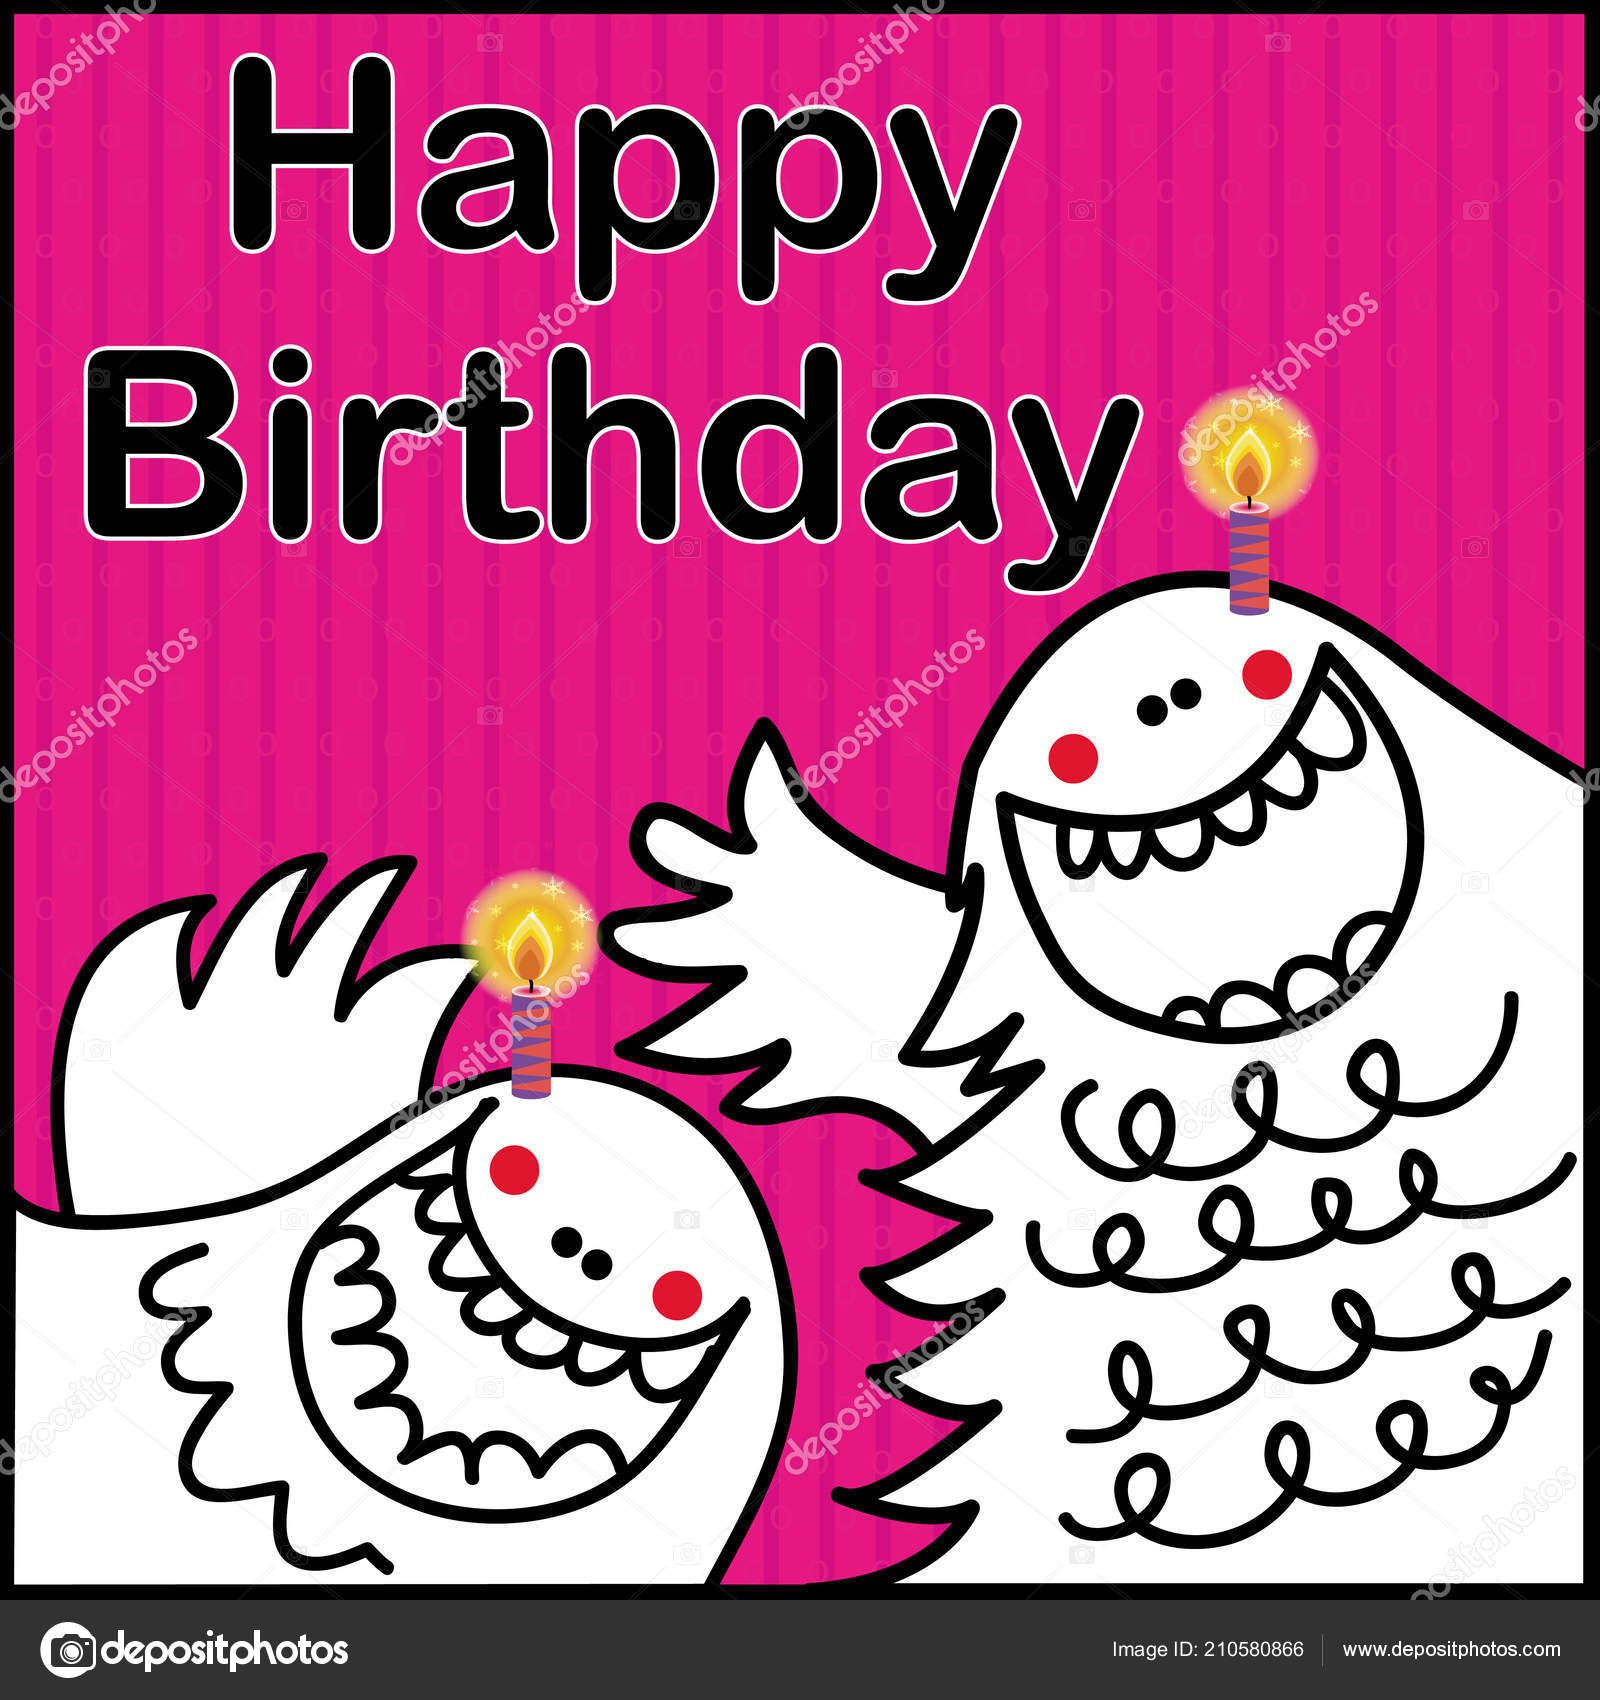 Funny Happy Birthday Wishes Full Hd Pictures 4k Ultra Full